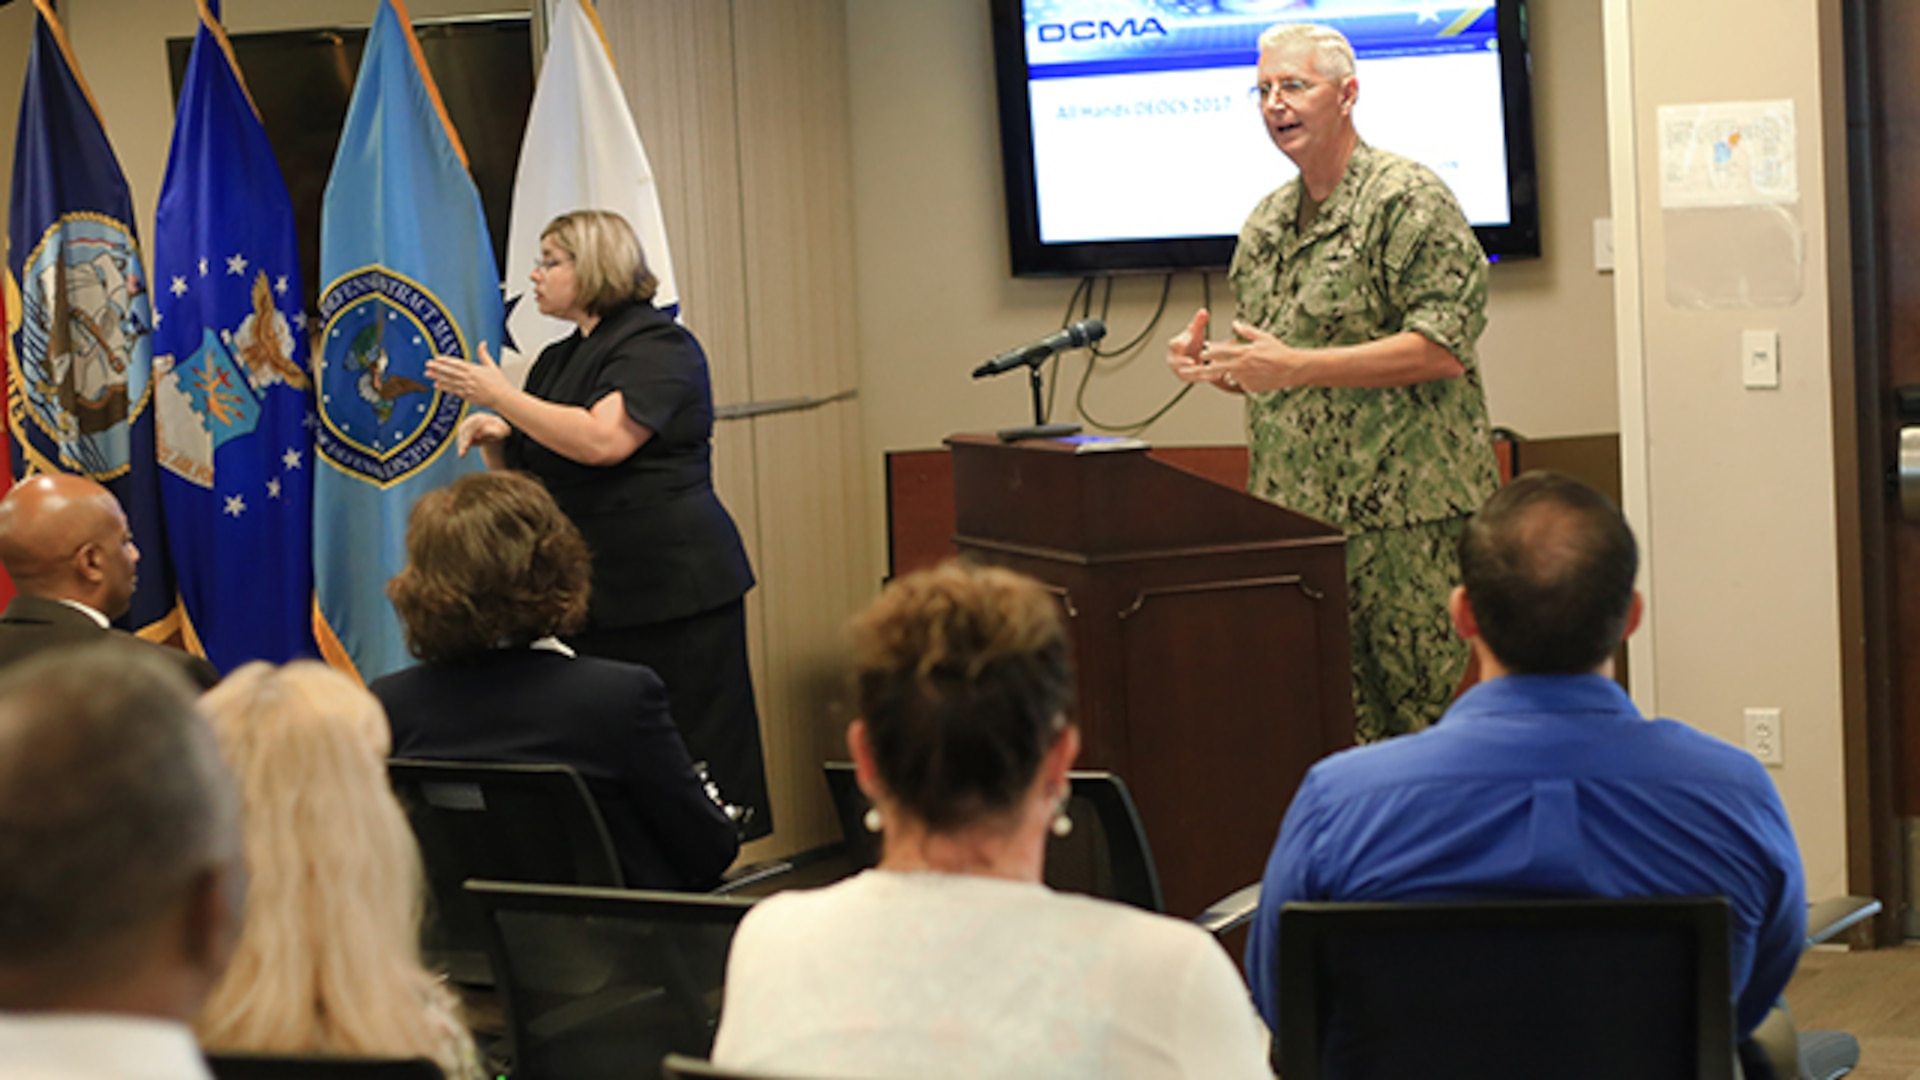 Defense Contract Management Agency director, Navy Vice Adm. David Lewis discusses his goals over the next few years to the agency during the first global all hands on July 26, 2017 at Fort Lee, Virginia. (DCMA photo by Elizabeth Szoke)